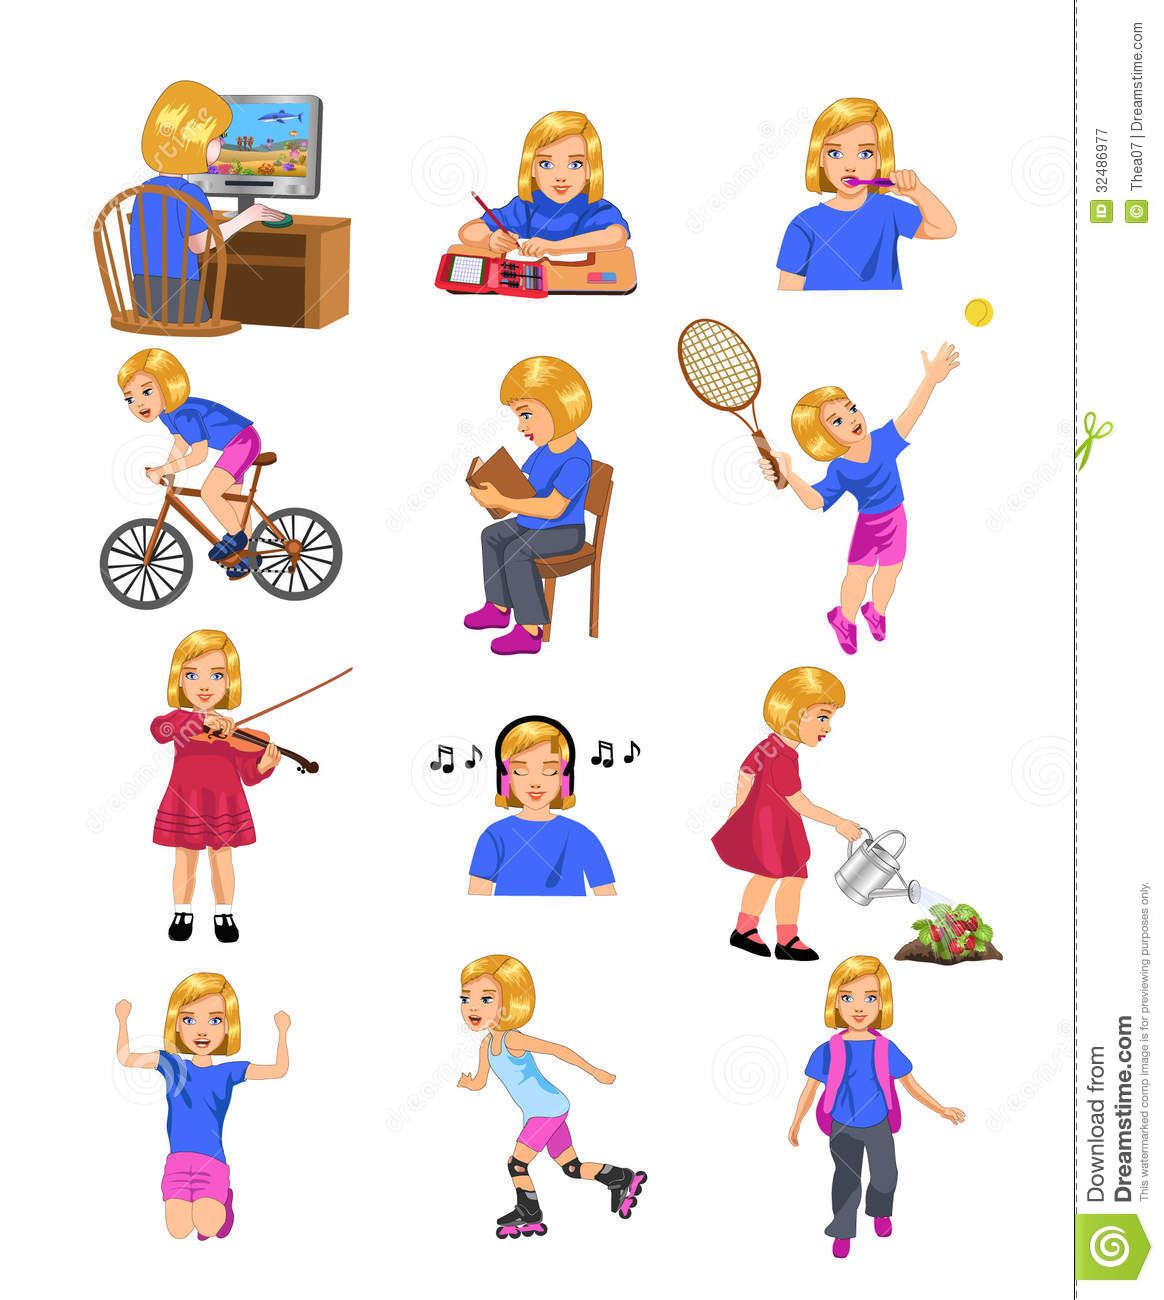 Girl activities royalty free stock photography image